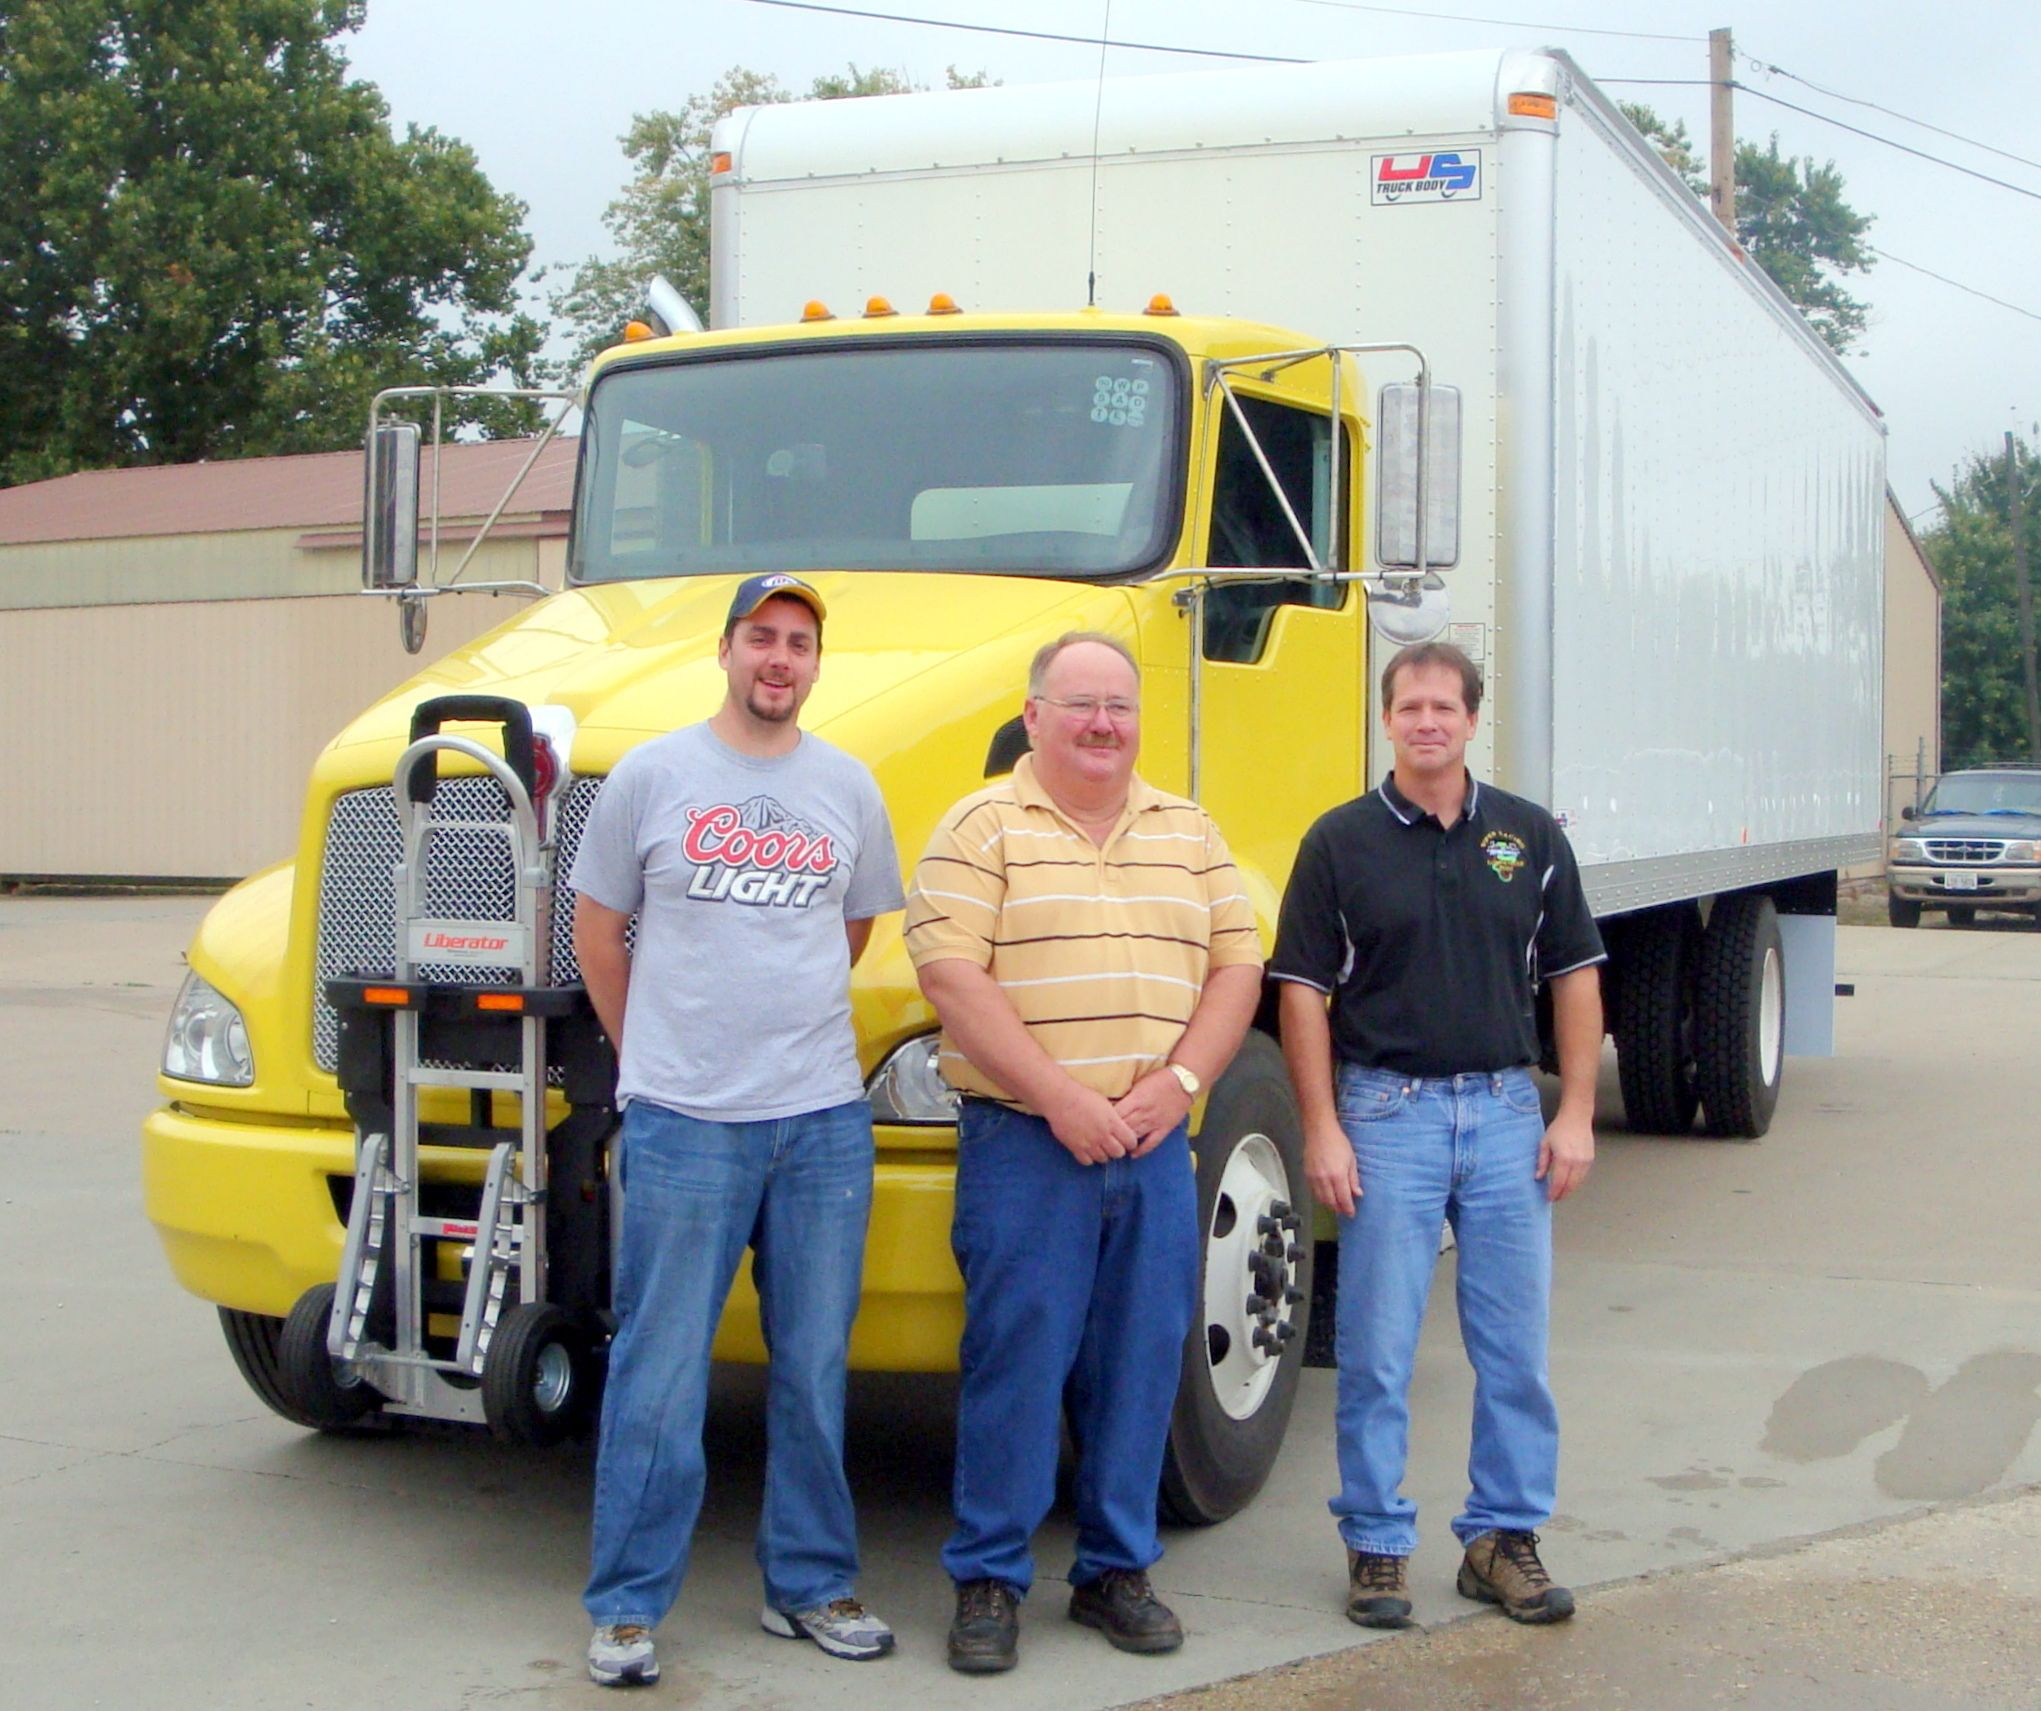 Hts Systems Visits Team At Us Truck Body In Illinois Truck Transport Truck And Trailer Trucks